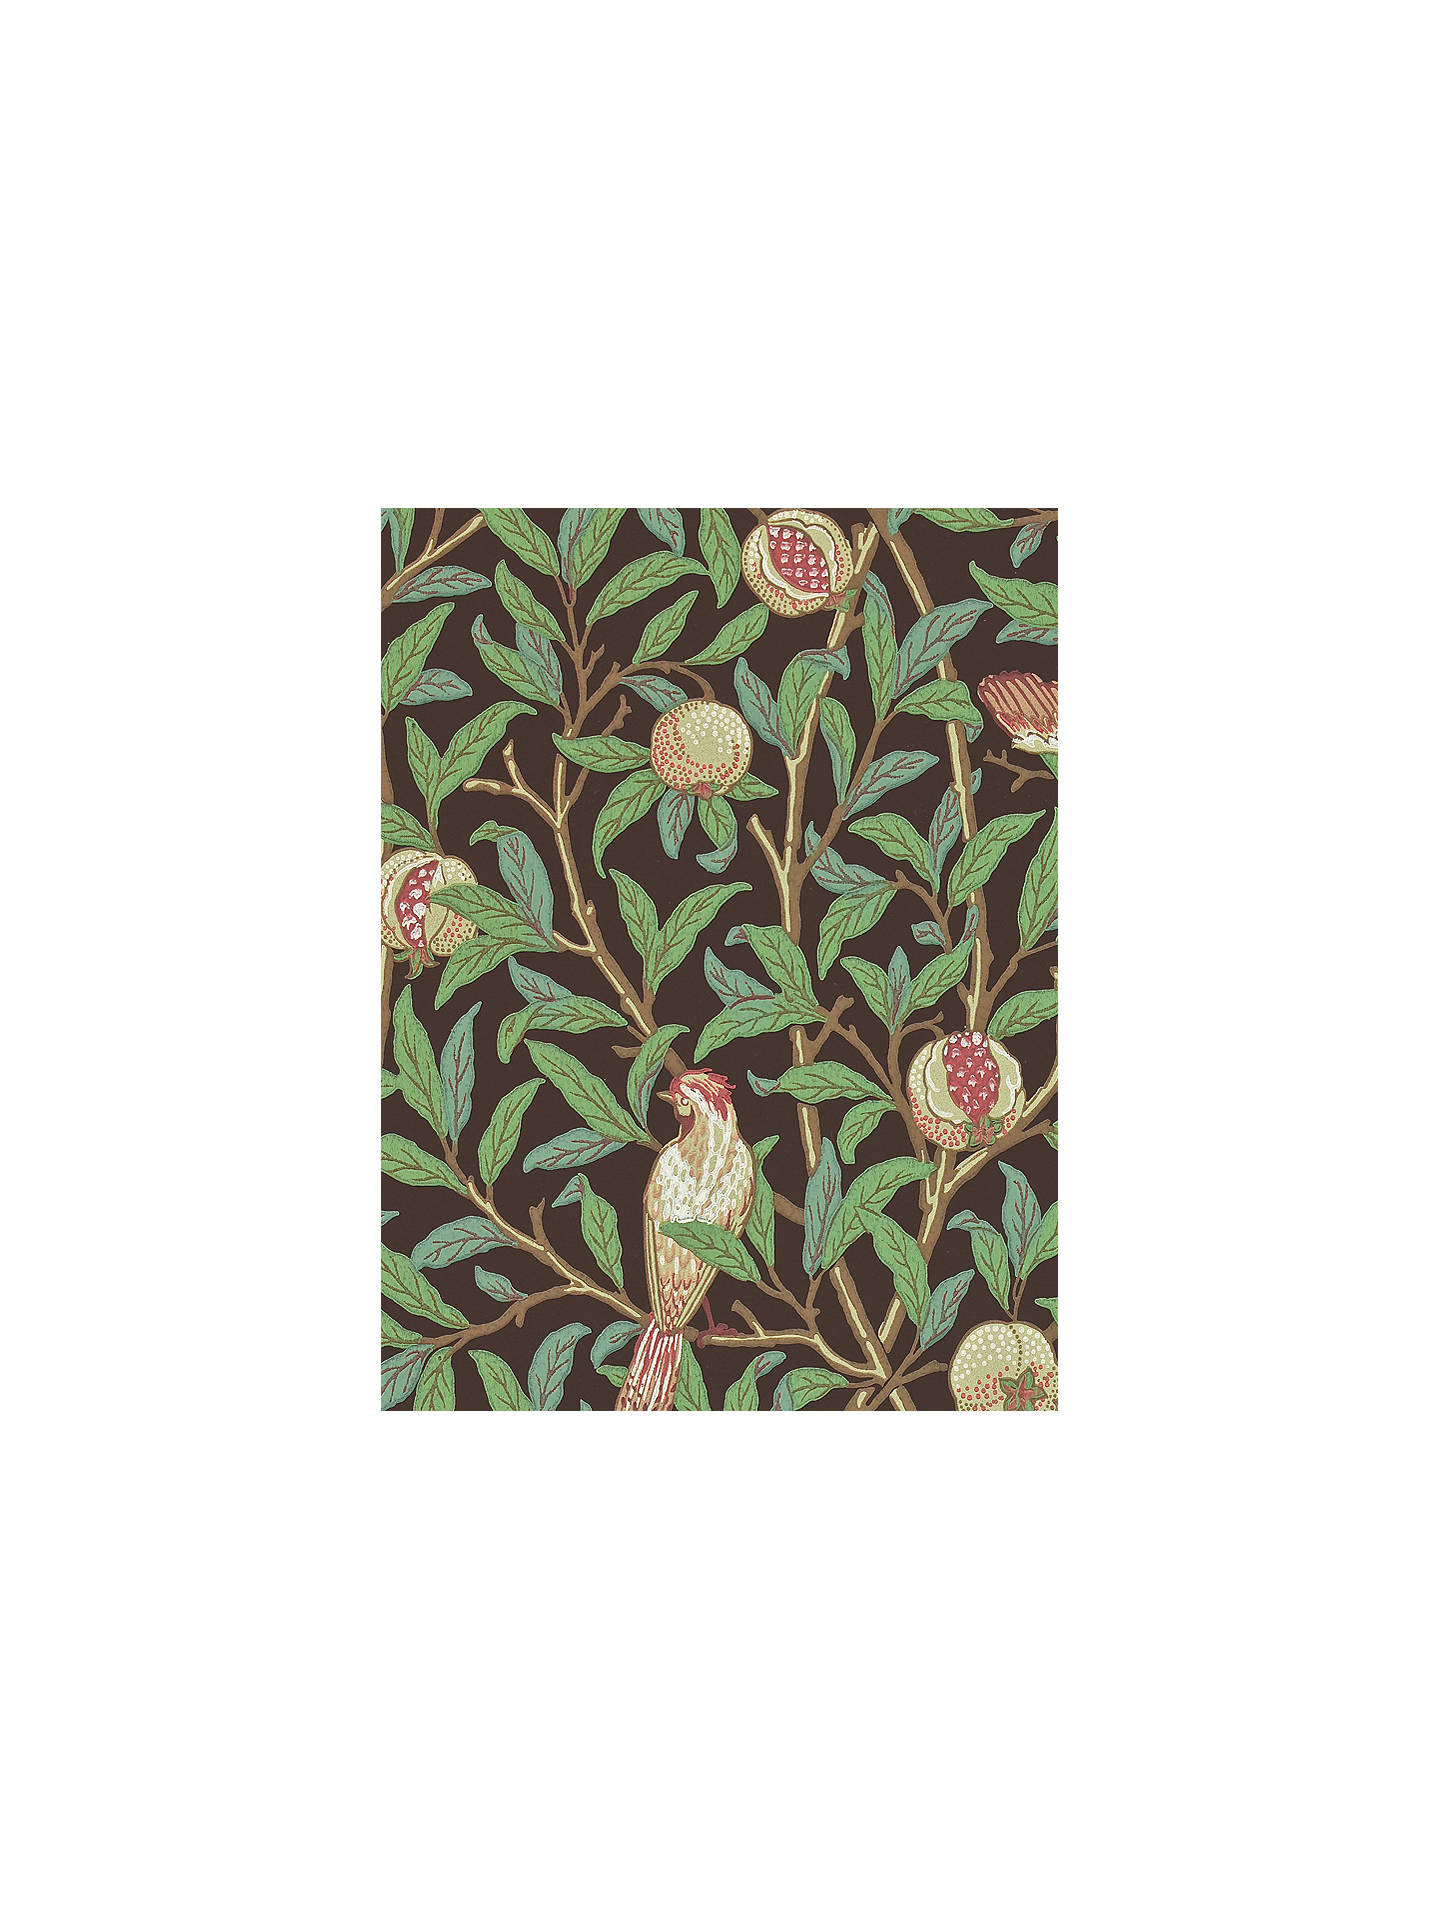 Buy Morris & Co. Bird and Pomegranate Wallpaper, 212537 Online at johnlewis.com